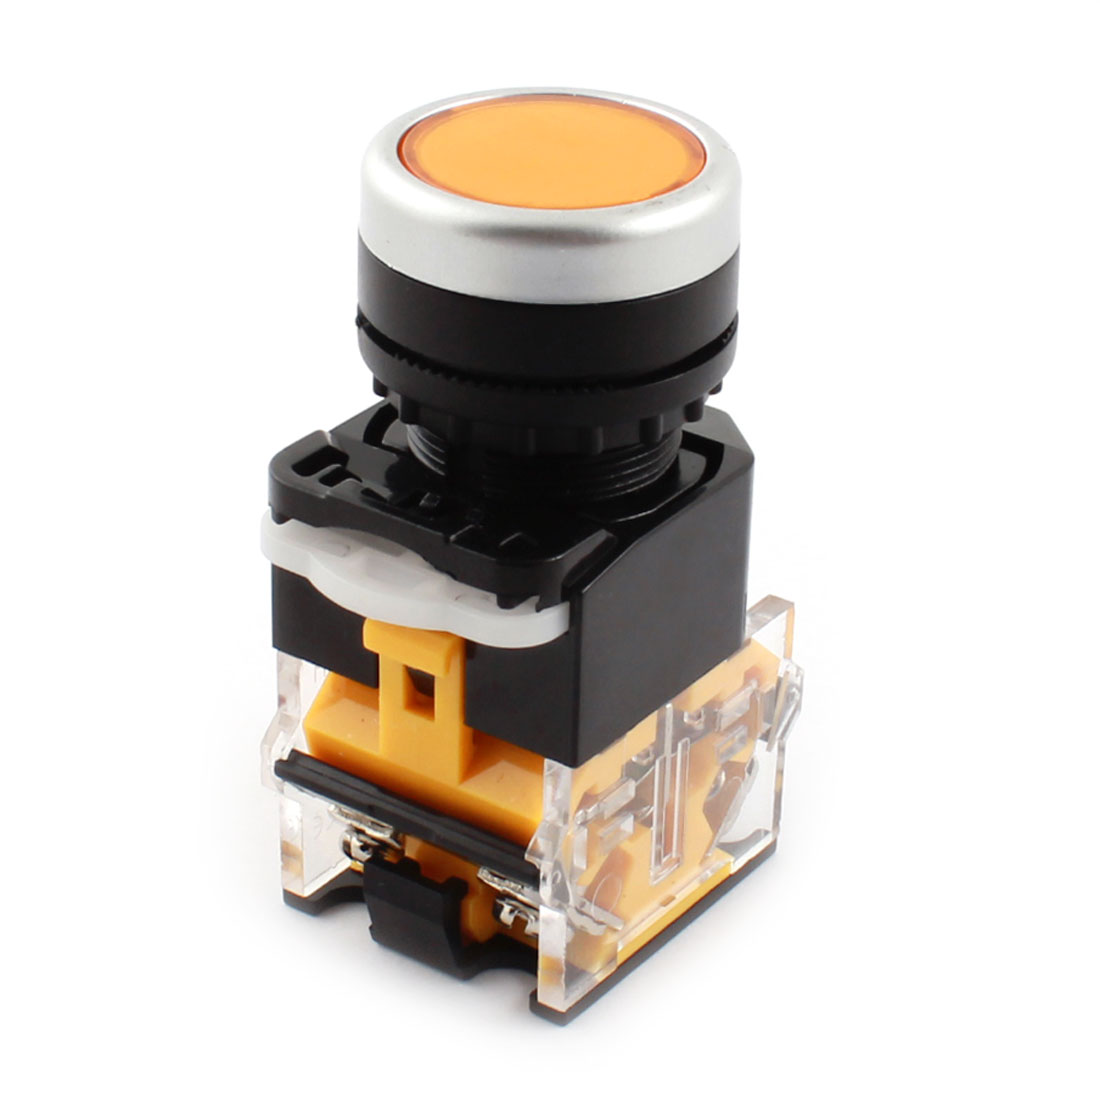 AC400V 10A 22mm Dia Thread Panel Mount DPST 1NO 1NC 4 Screw Terminal Momentary Yellow Push Button Switch